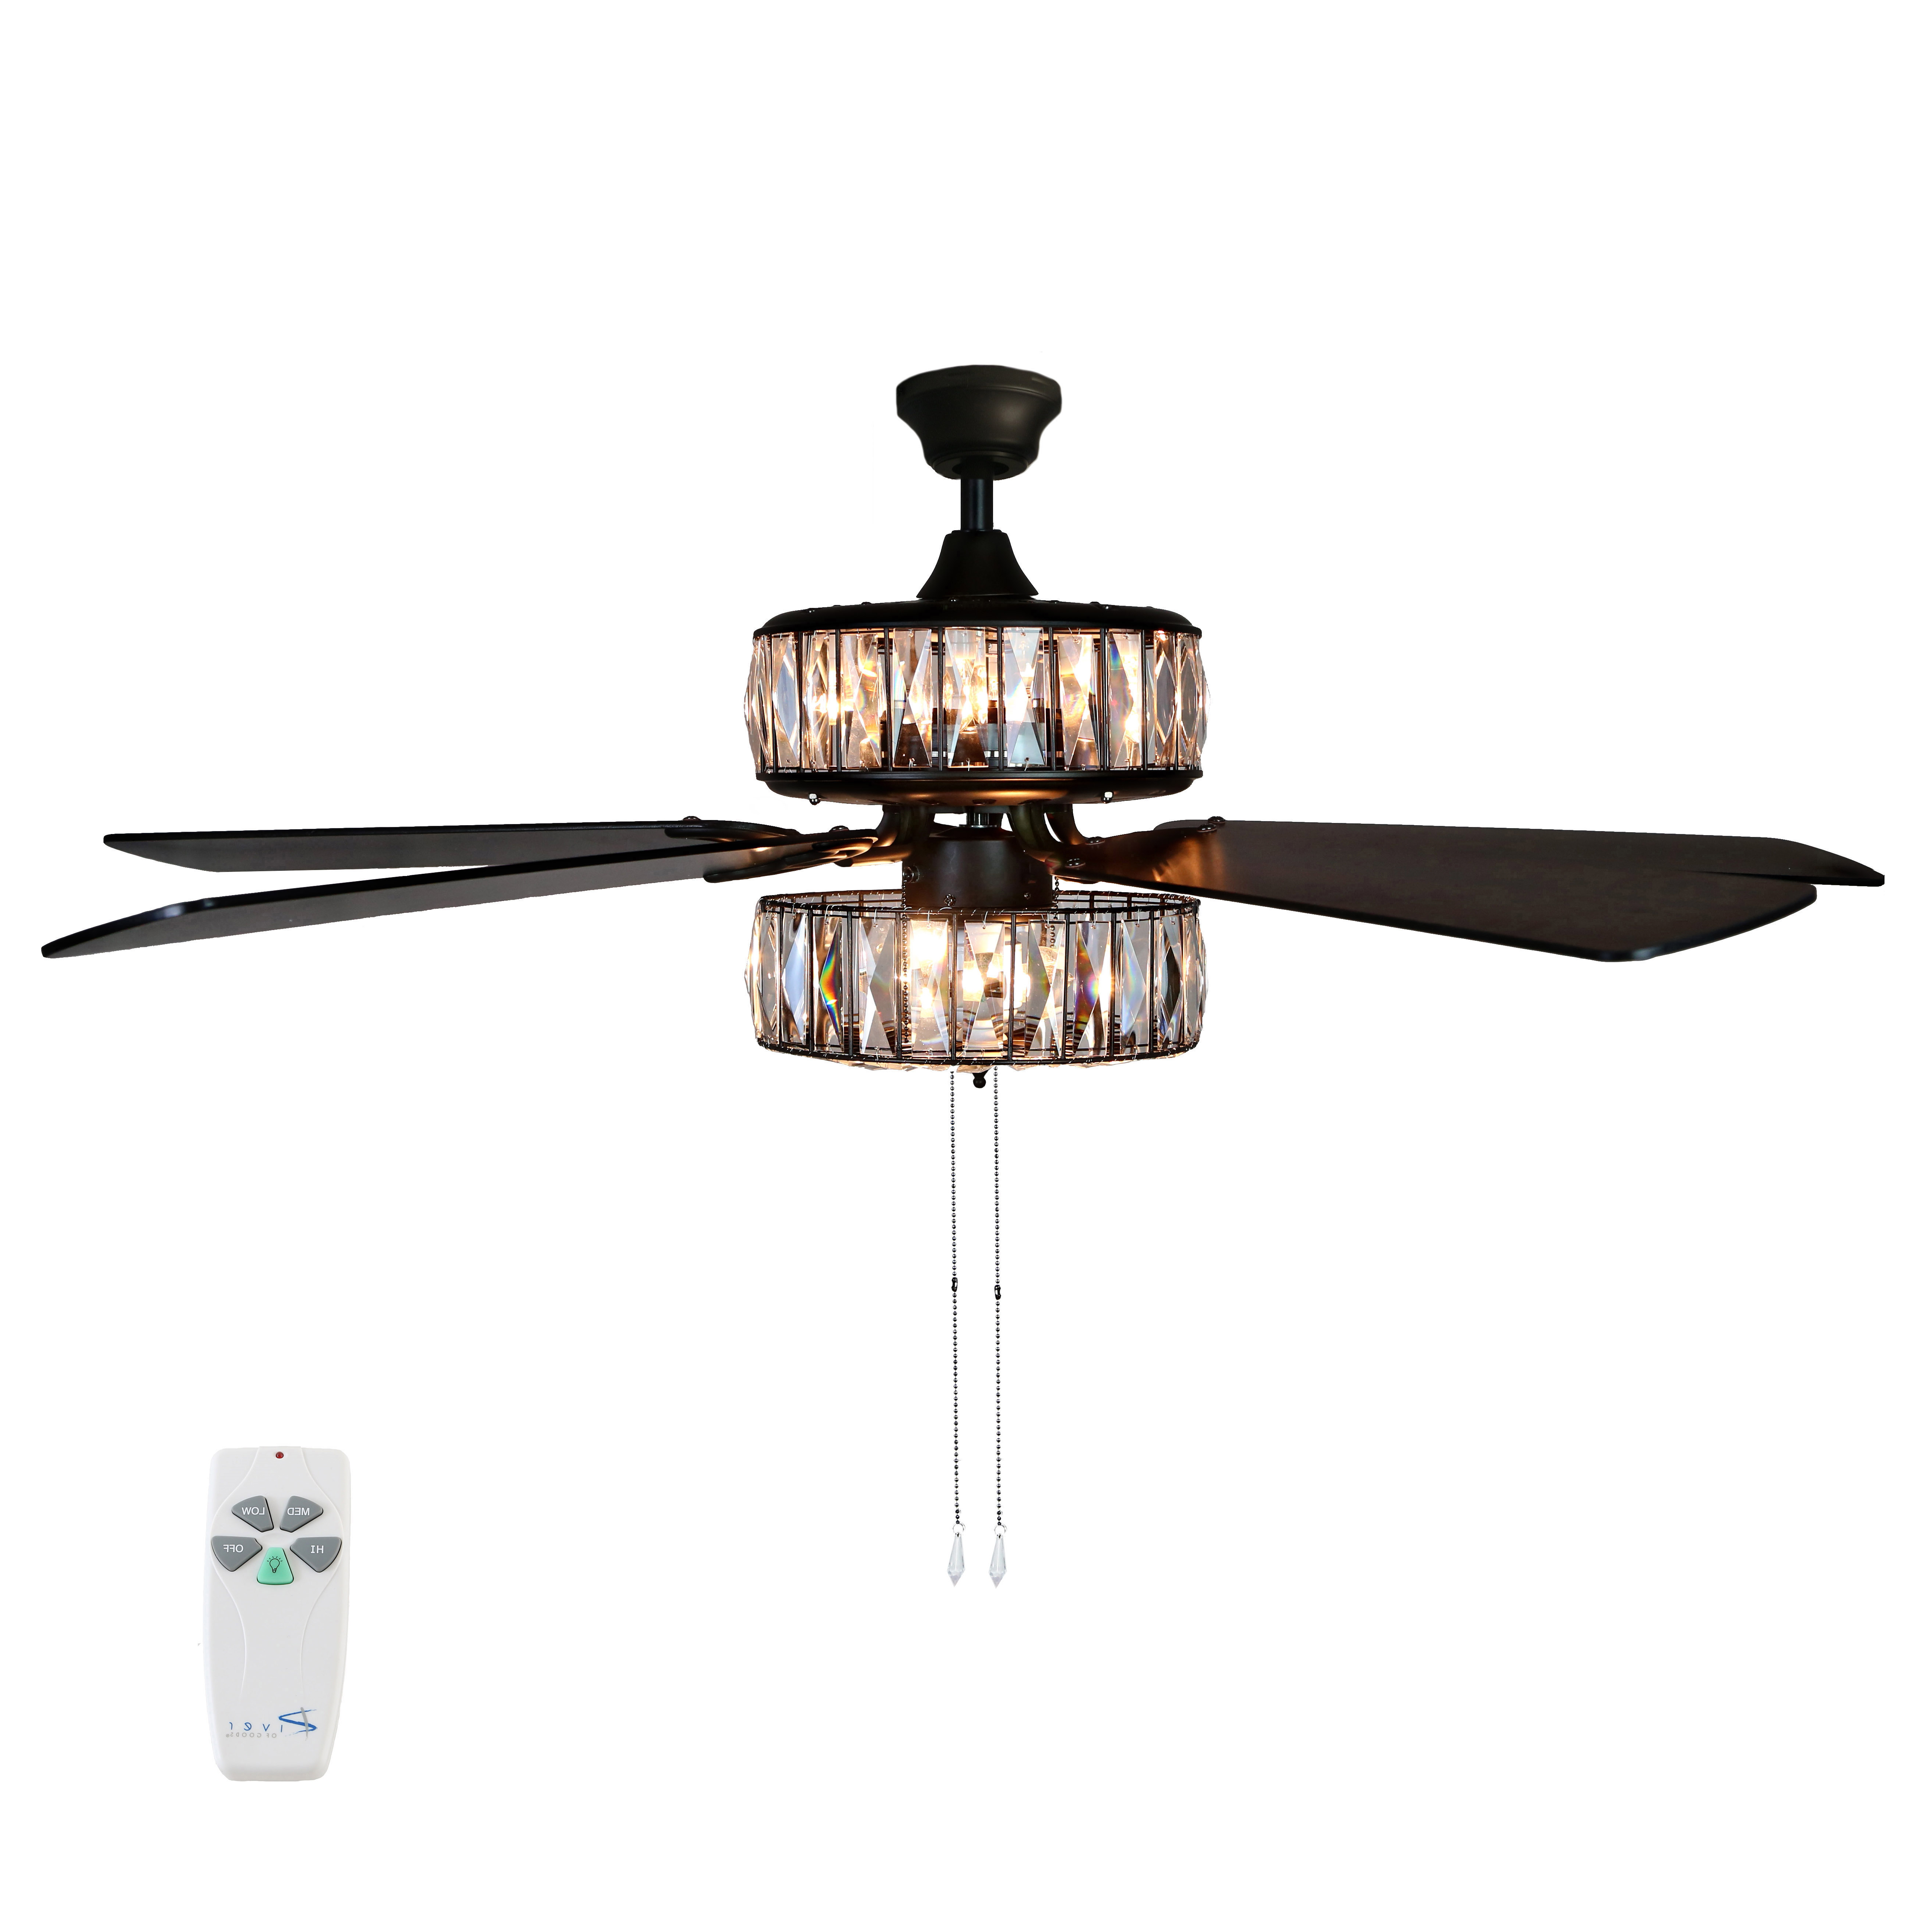 "River Of Goods 52""w Caged Crystal 5 Blade Ceiling Fan With Remote Throughout Well Known Caged Crystal 5 Blade Ceiling Fans (View 18 of 20)"